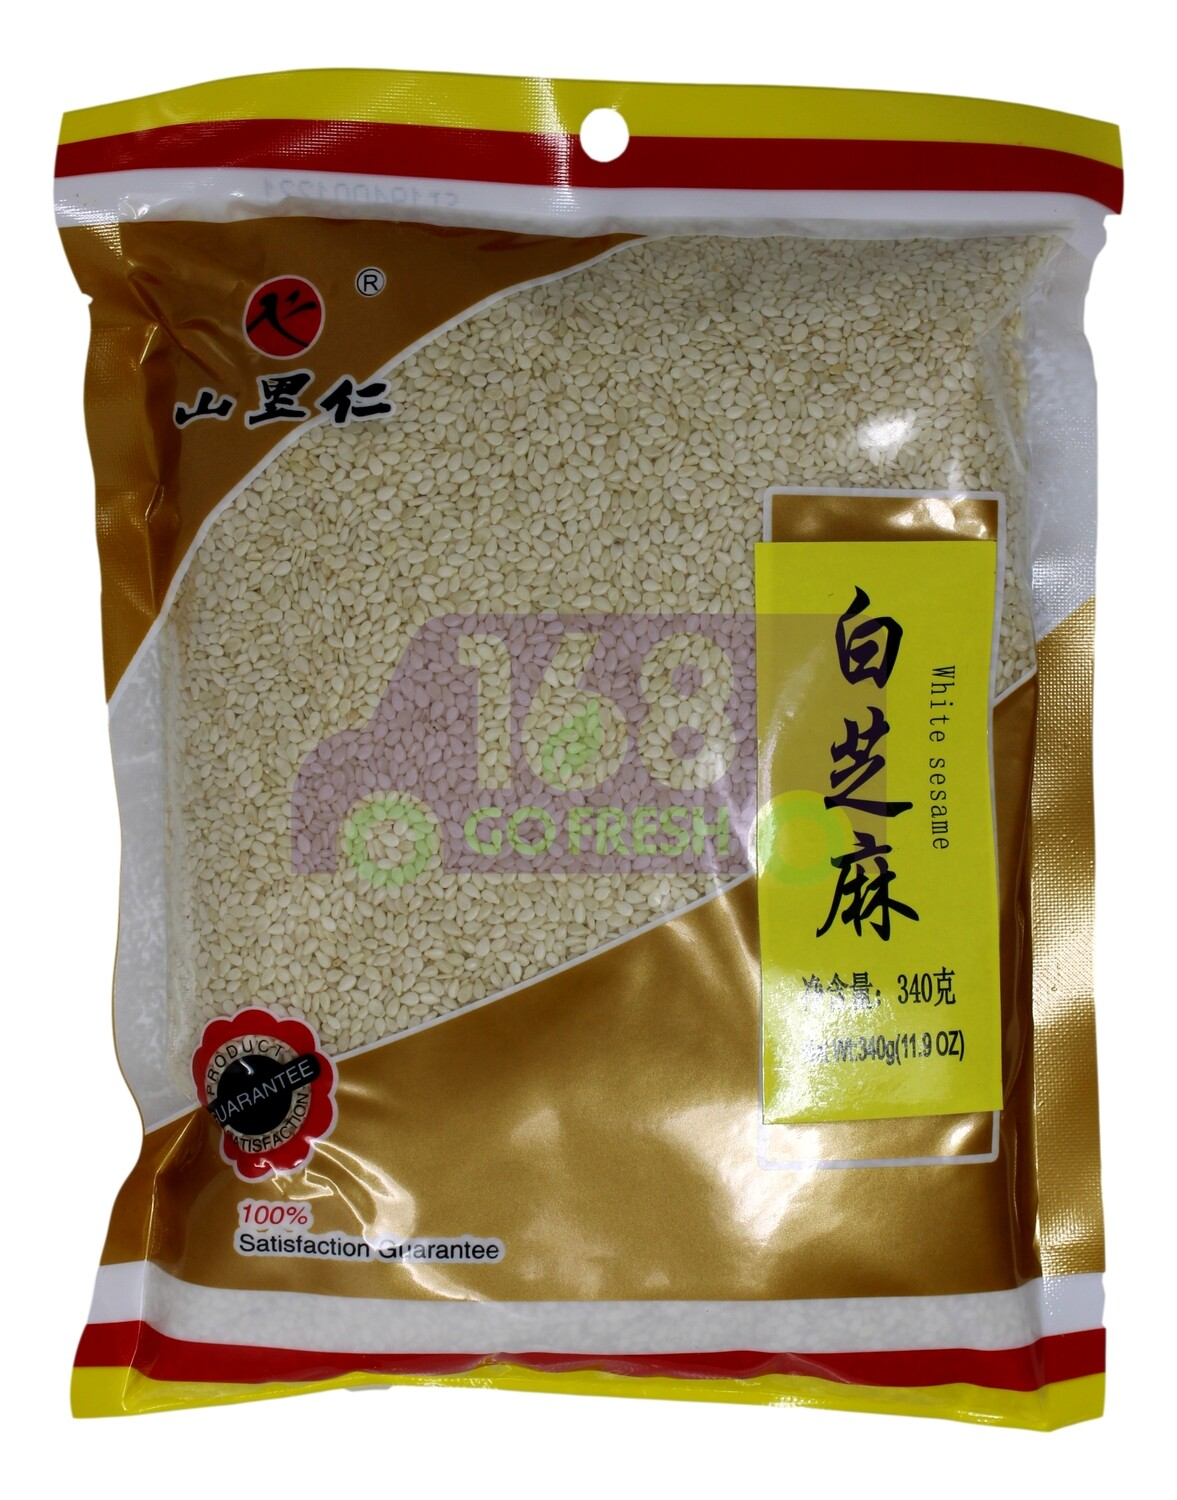 mountaineer white sesame 山里仁 白芝麻 (11.9 oz)